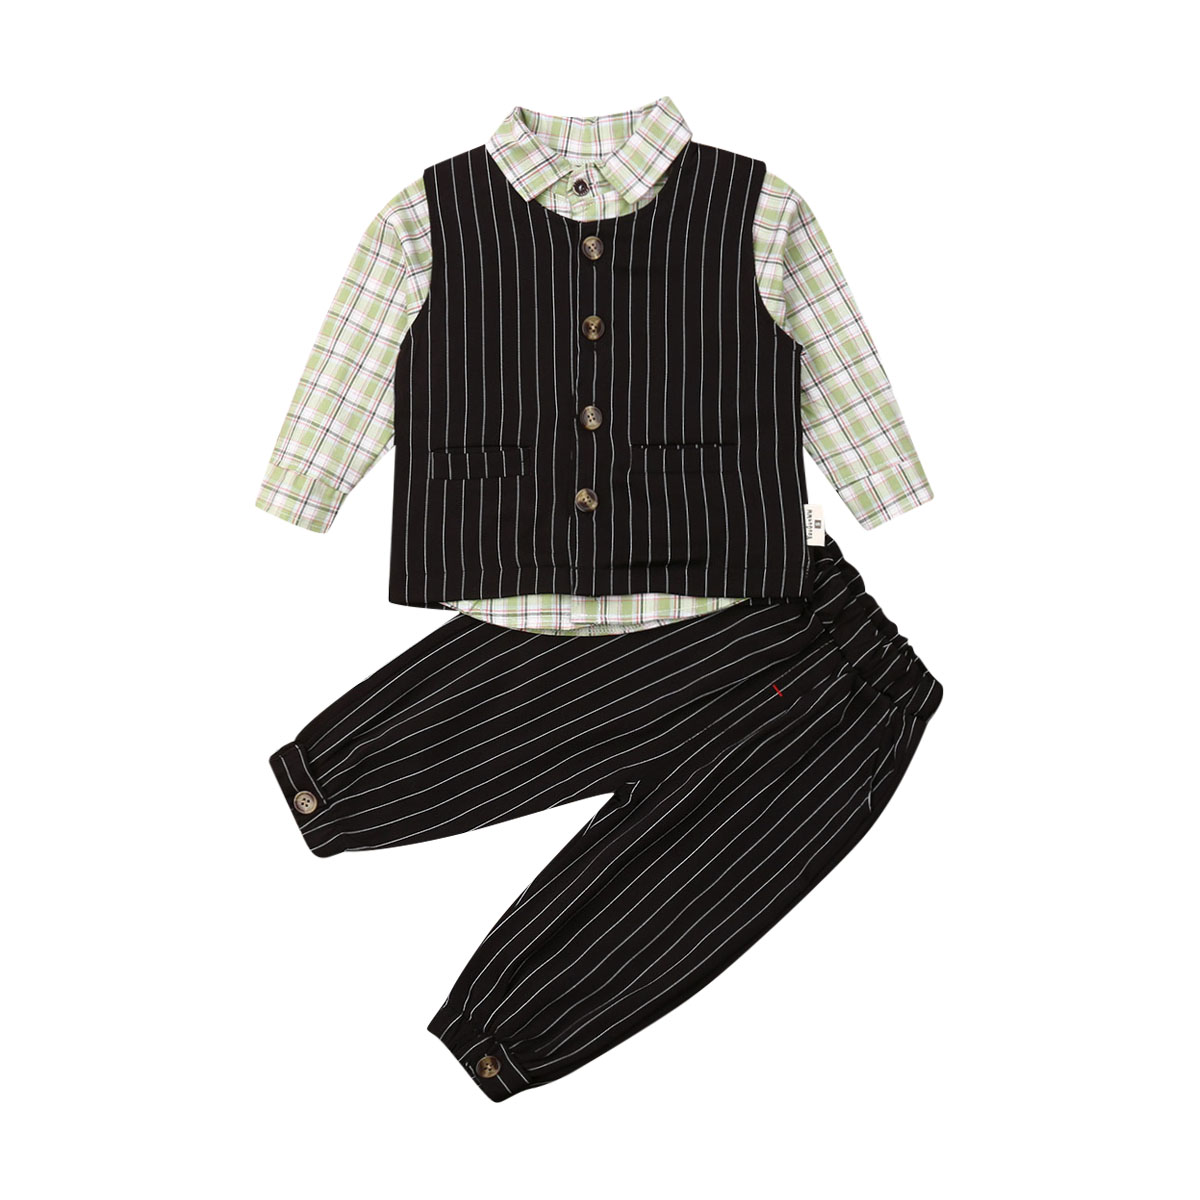 Handsome Toddler Boy Gentleman Suits 3 Piece Clothes Black Waistcoat Long Sleeve Shirts Pants Kids Autumn Formal Outfits in Clothing Sets from Mother Kids